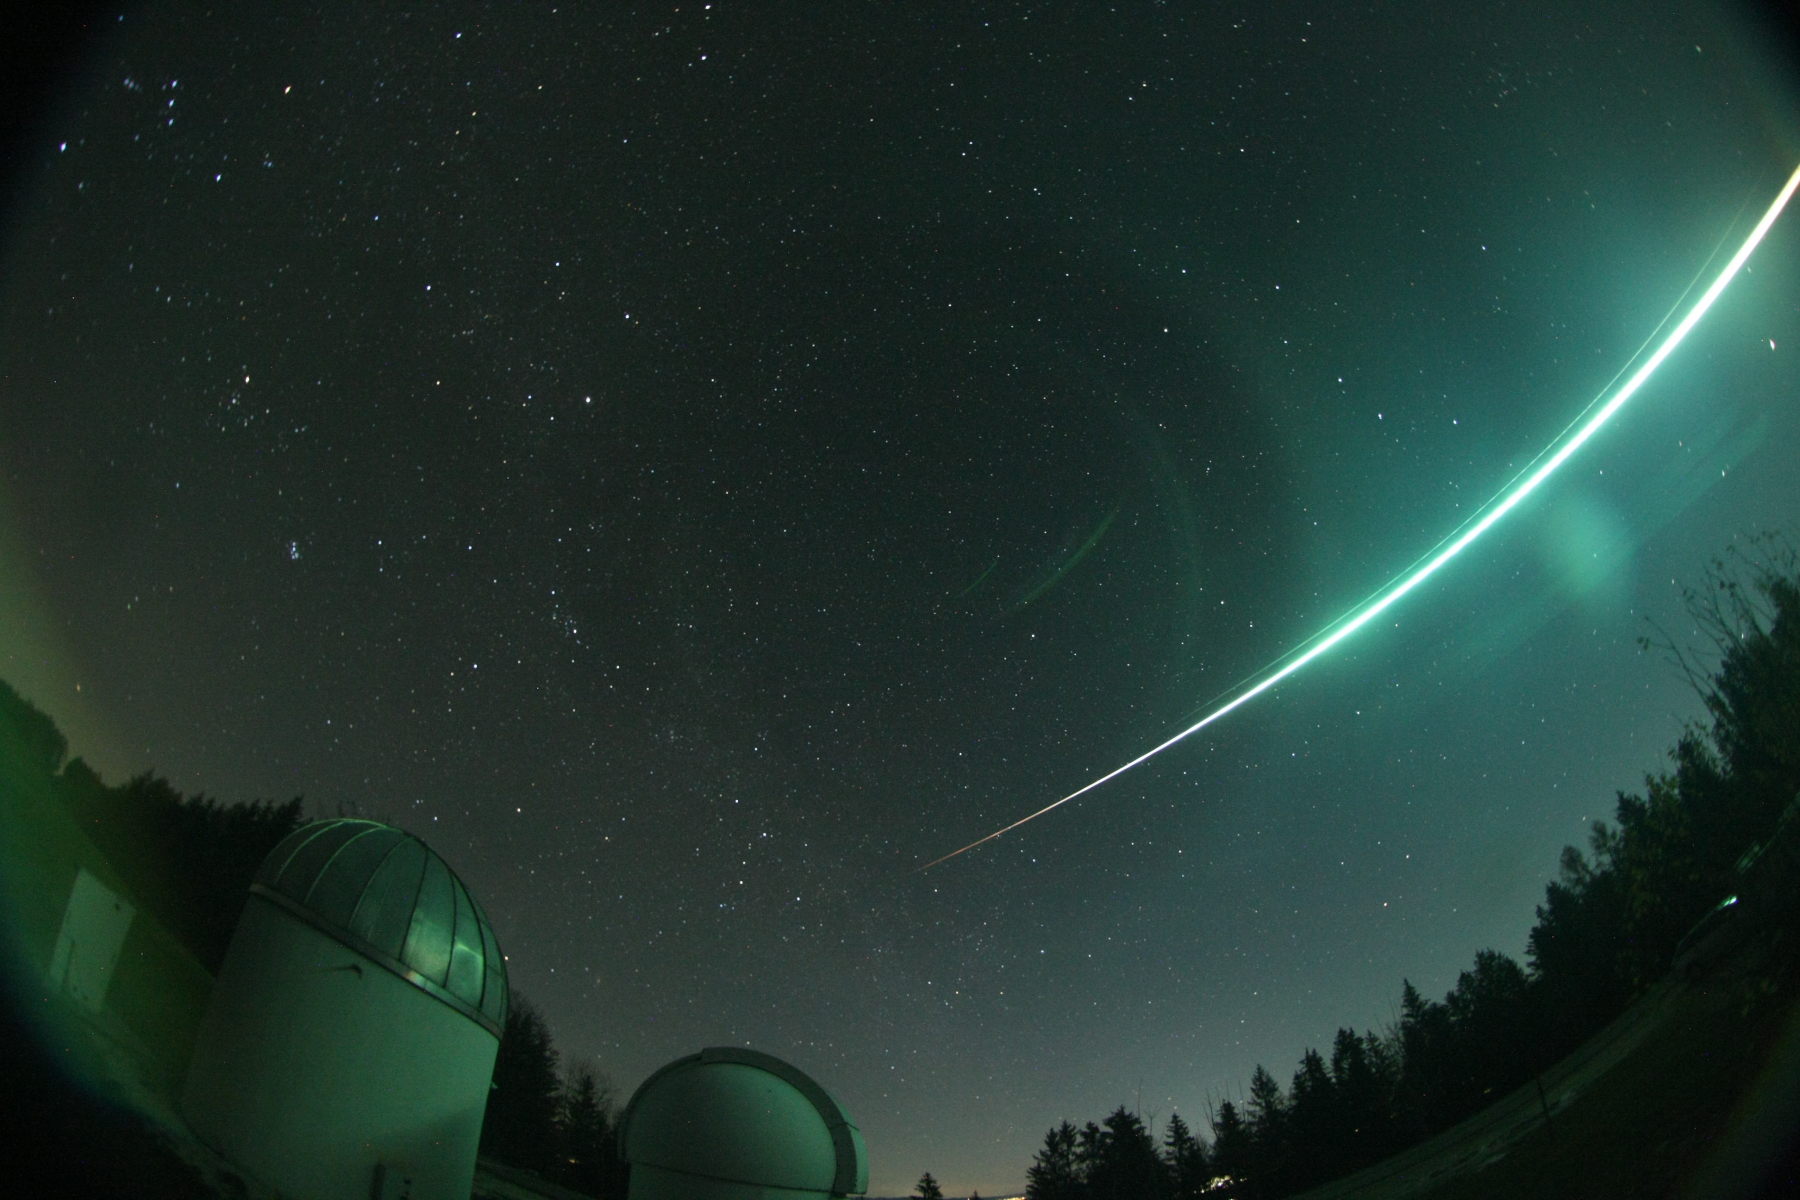 November 19, 2020, 03h 46min UT fireball captured by Erwin F., from Weyregg am Attersee (Austria).